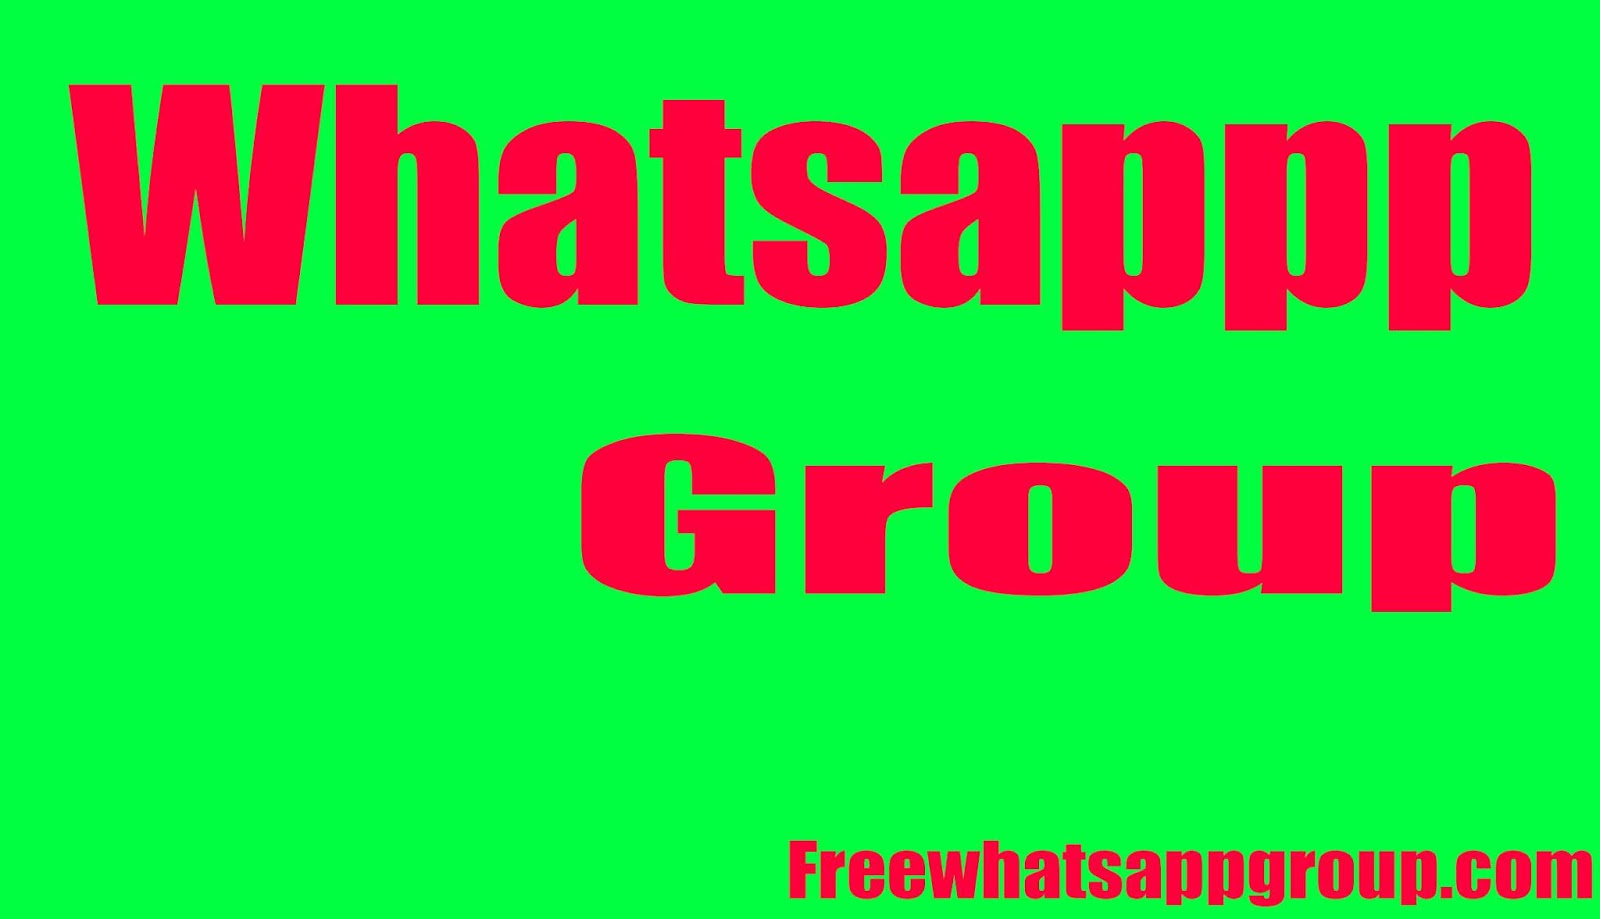 whatsapp group link, whatsapp group